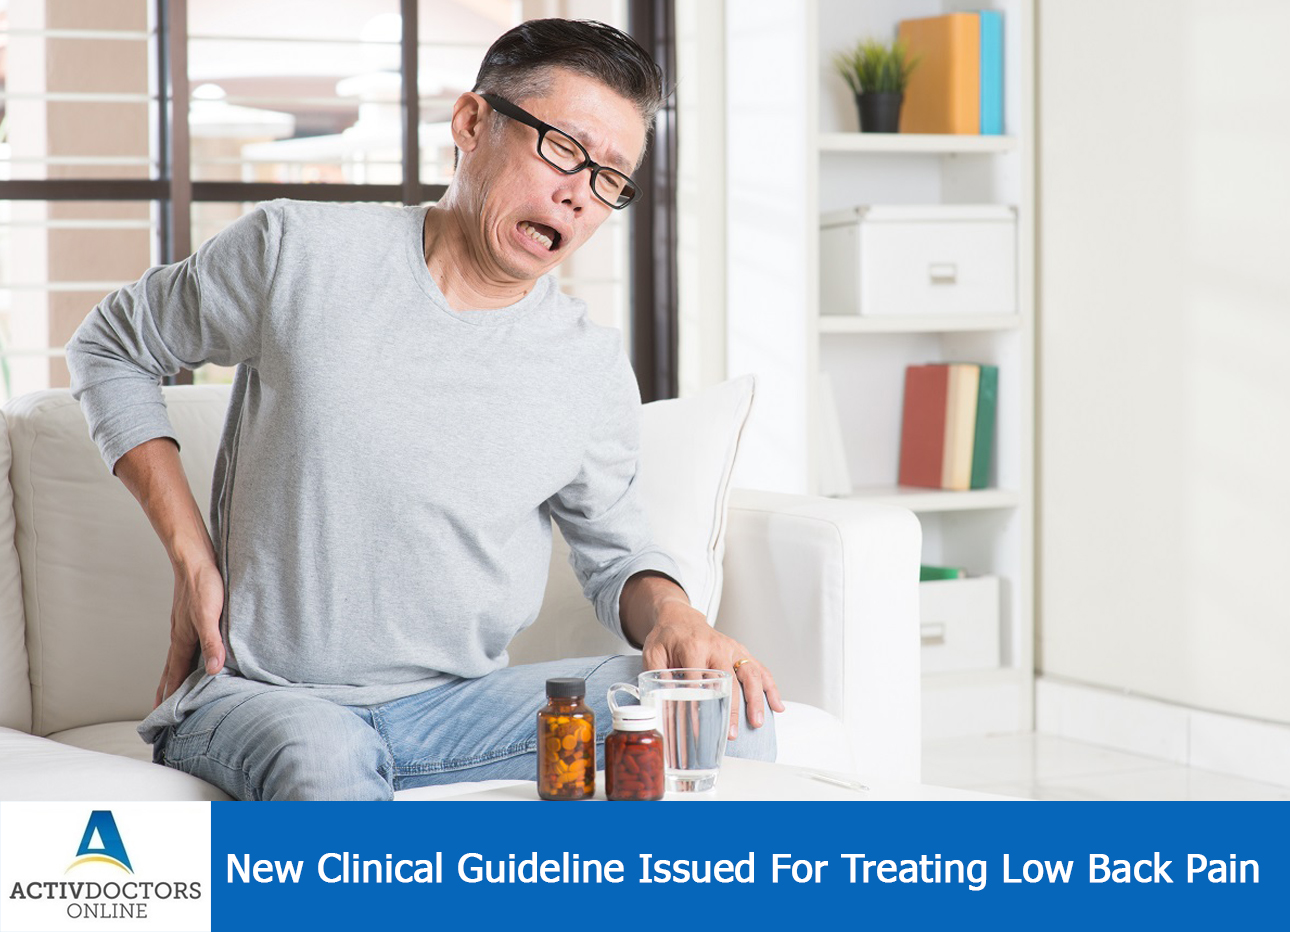 New Clinical Guideline Issued For Treating Low Back Pain